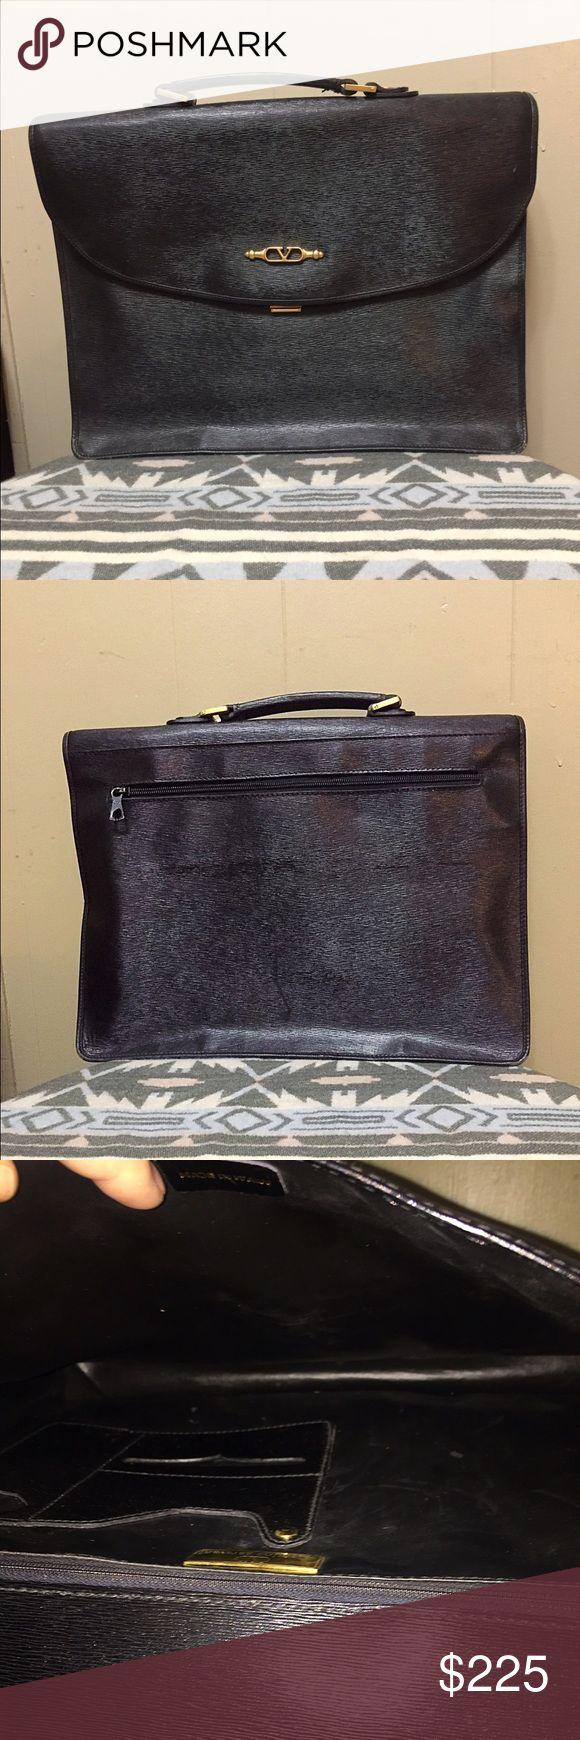 ⚡️⚡️FLASH SALE ⚡️⚡️Vintage Valentino  Briefcase Beautiful, vintage Valentino Garavani black leather briefcase. In good used condition with some signs of wear around edges. There is still apt of life left in this beautiful bag. Gold tone hardware. Valentino Garavani Bags Laptop Bags